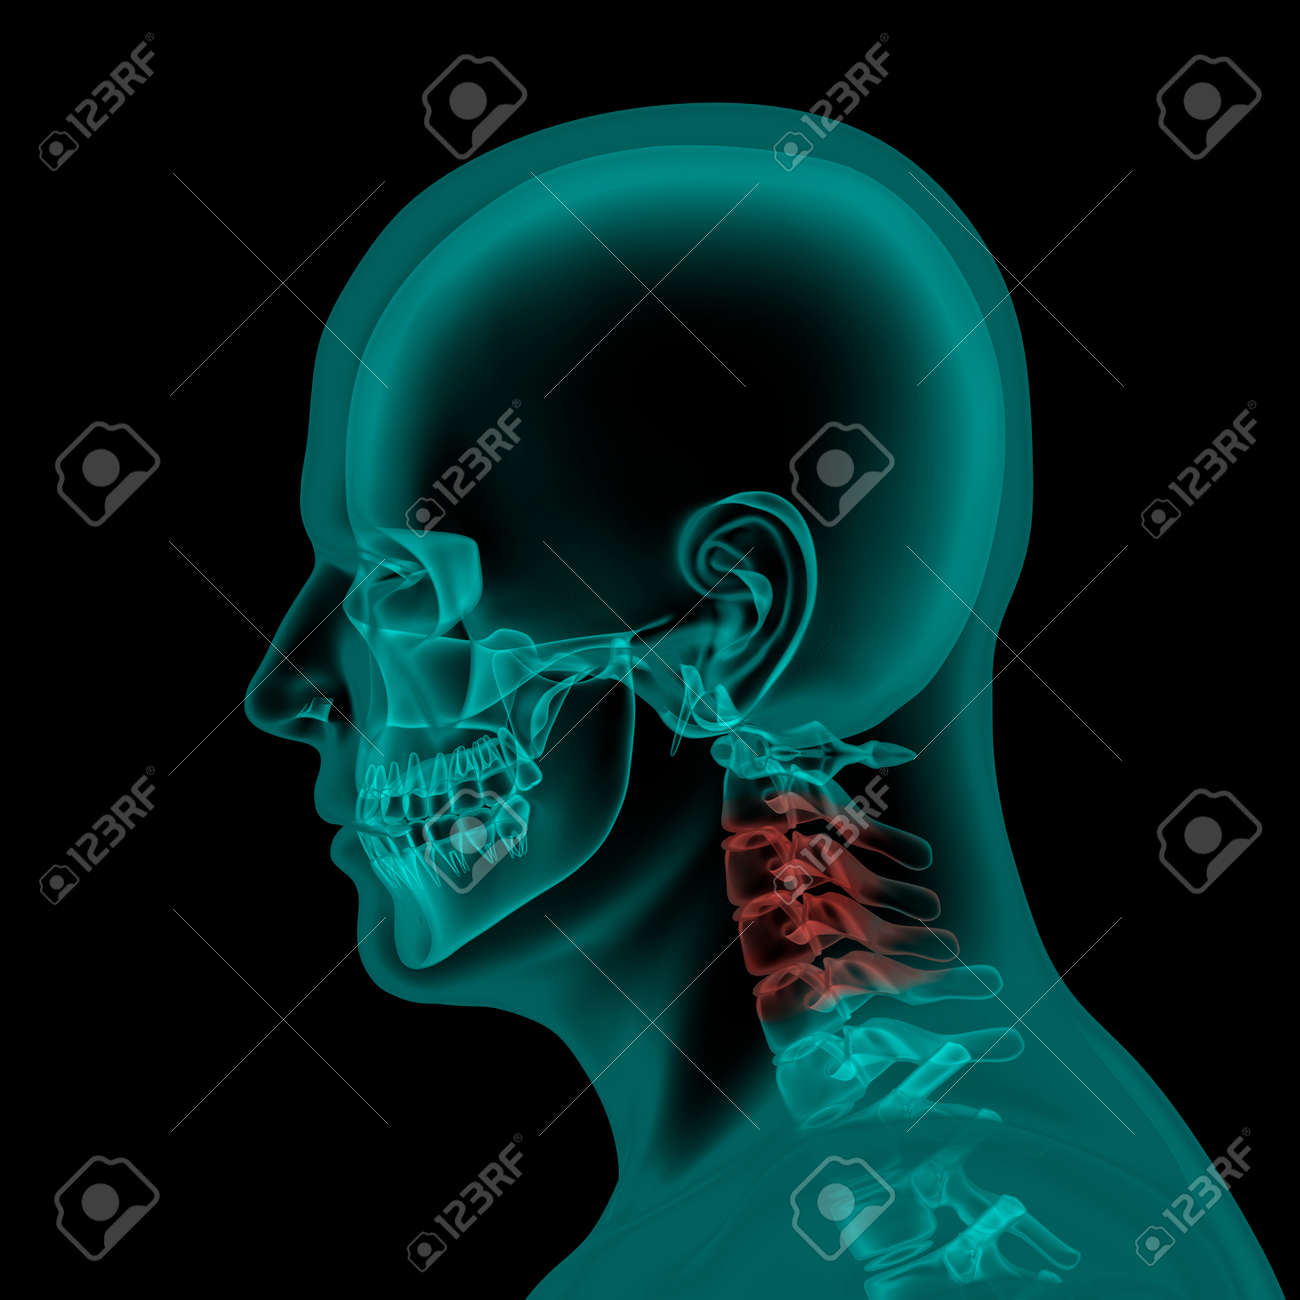 Lateral X-ray Scan View Of Human Skull And Neck Stock Photo, Picture ...